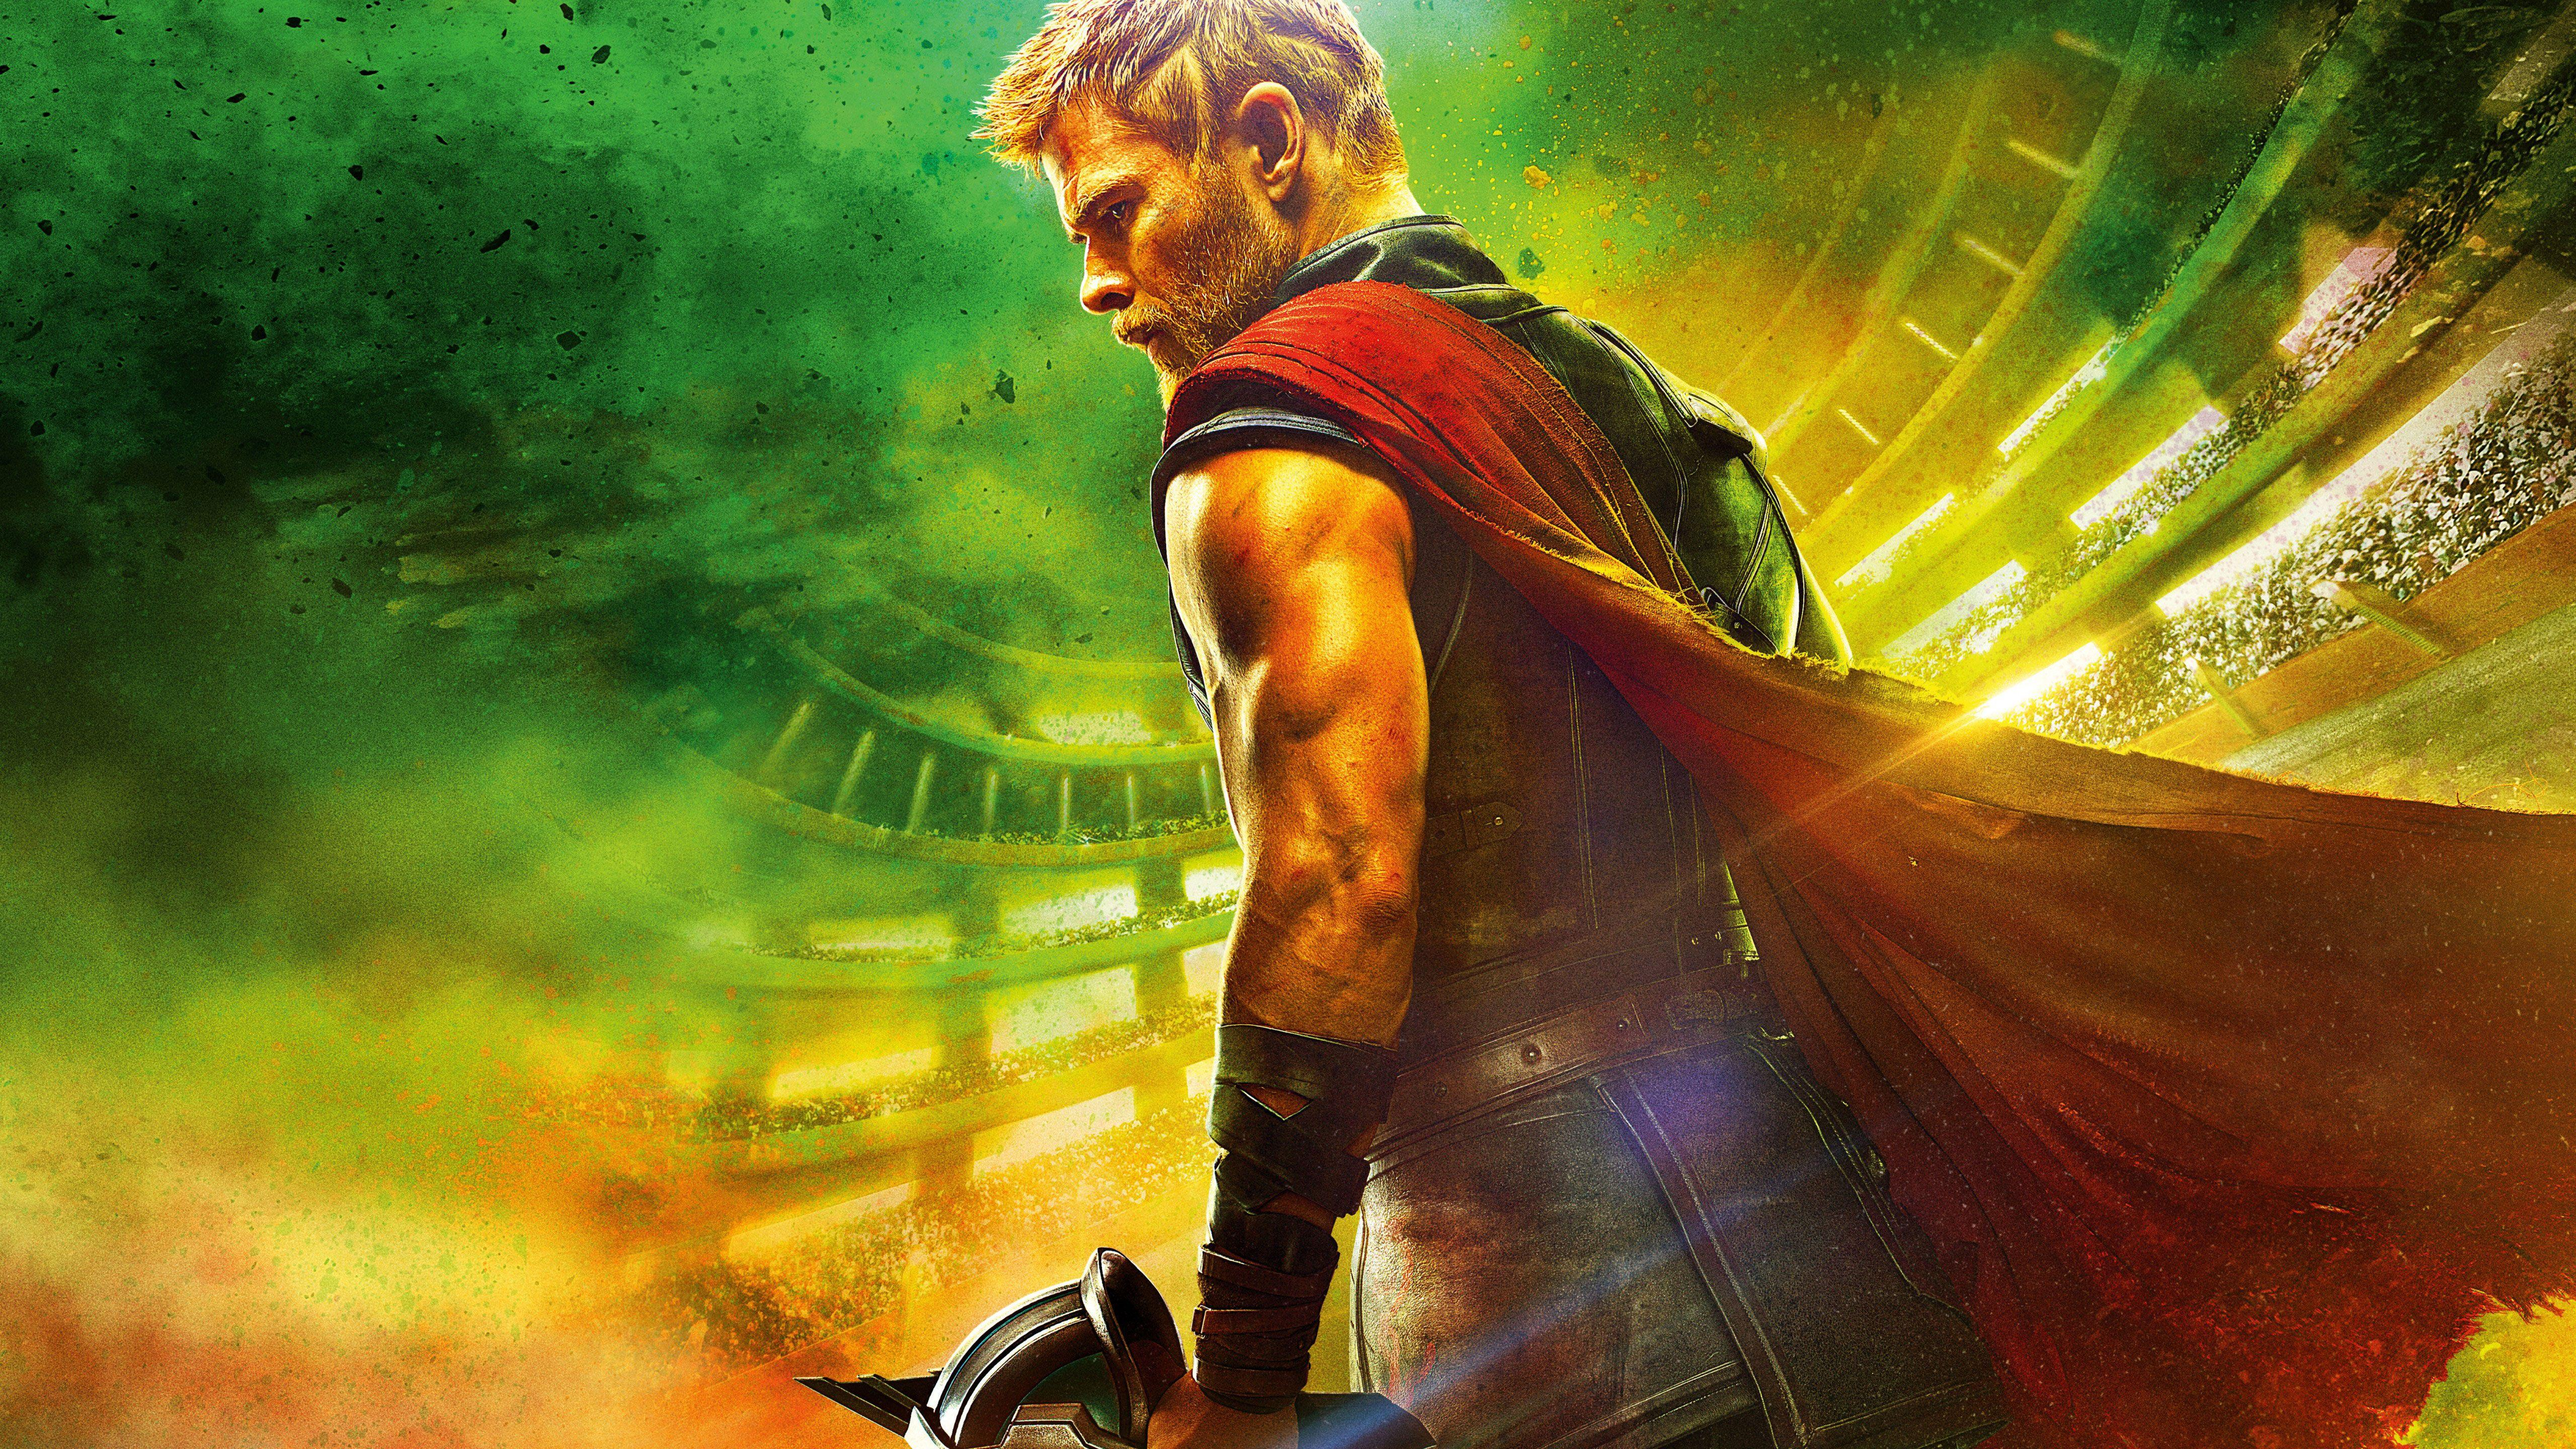 Thor Ragnarok 2017 5k, HD Movies, 4k Wallpapers, Image, Backgrounds